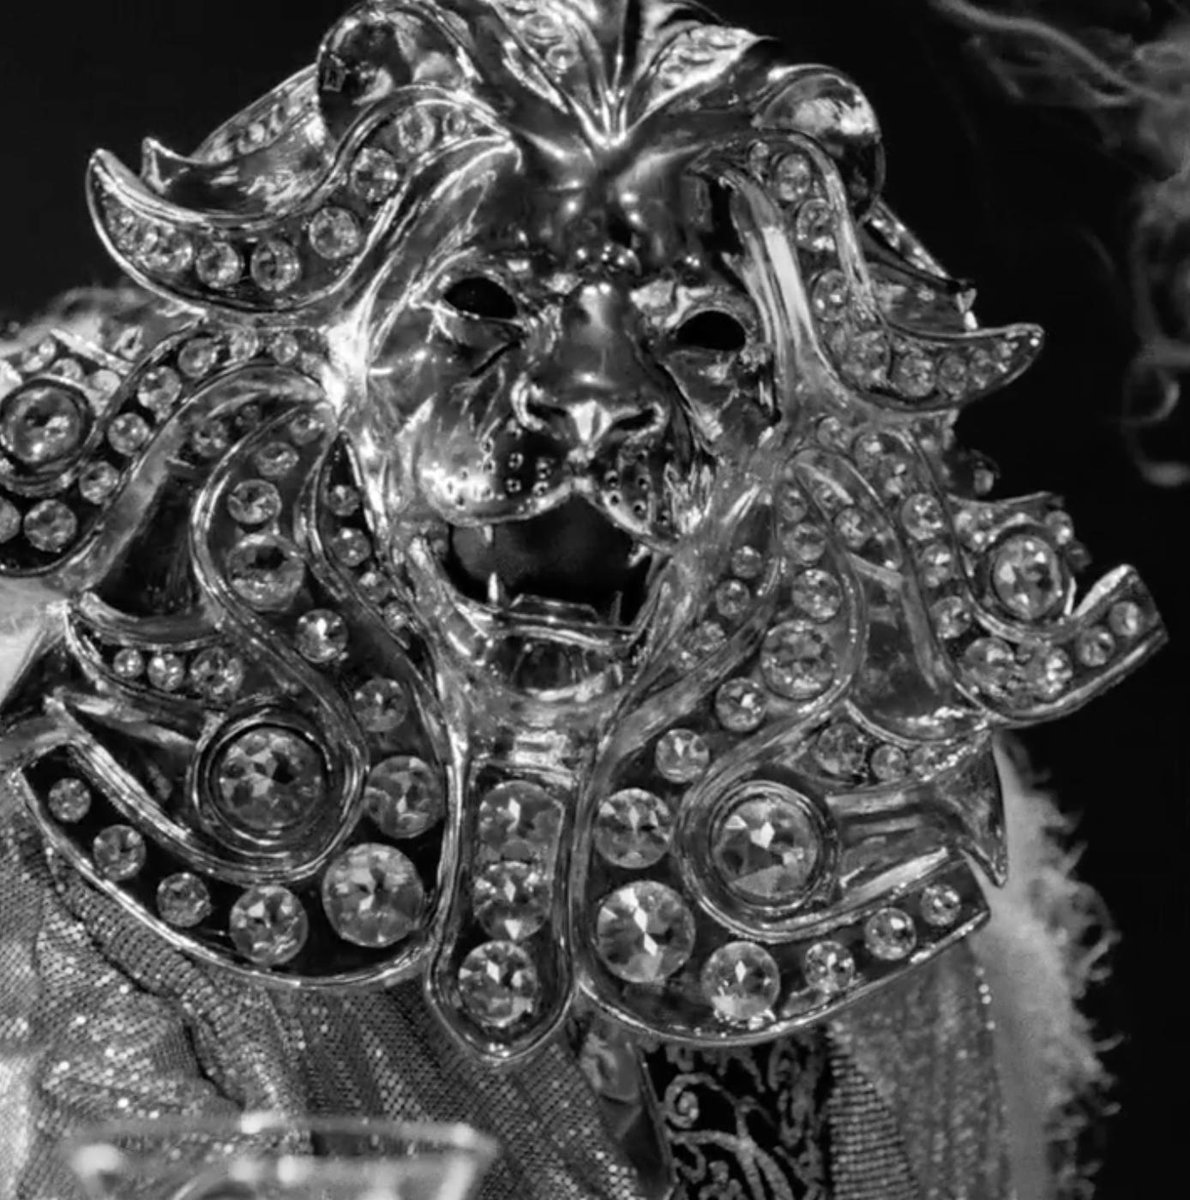 RT @MaskedSingerFOX: A mighty roar! ???? Send us your guesses by tweeting #LionMask + #TheMaskedSinger. https://t.co/6VteEdSZ4q